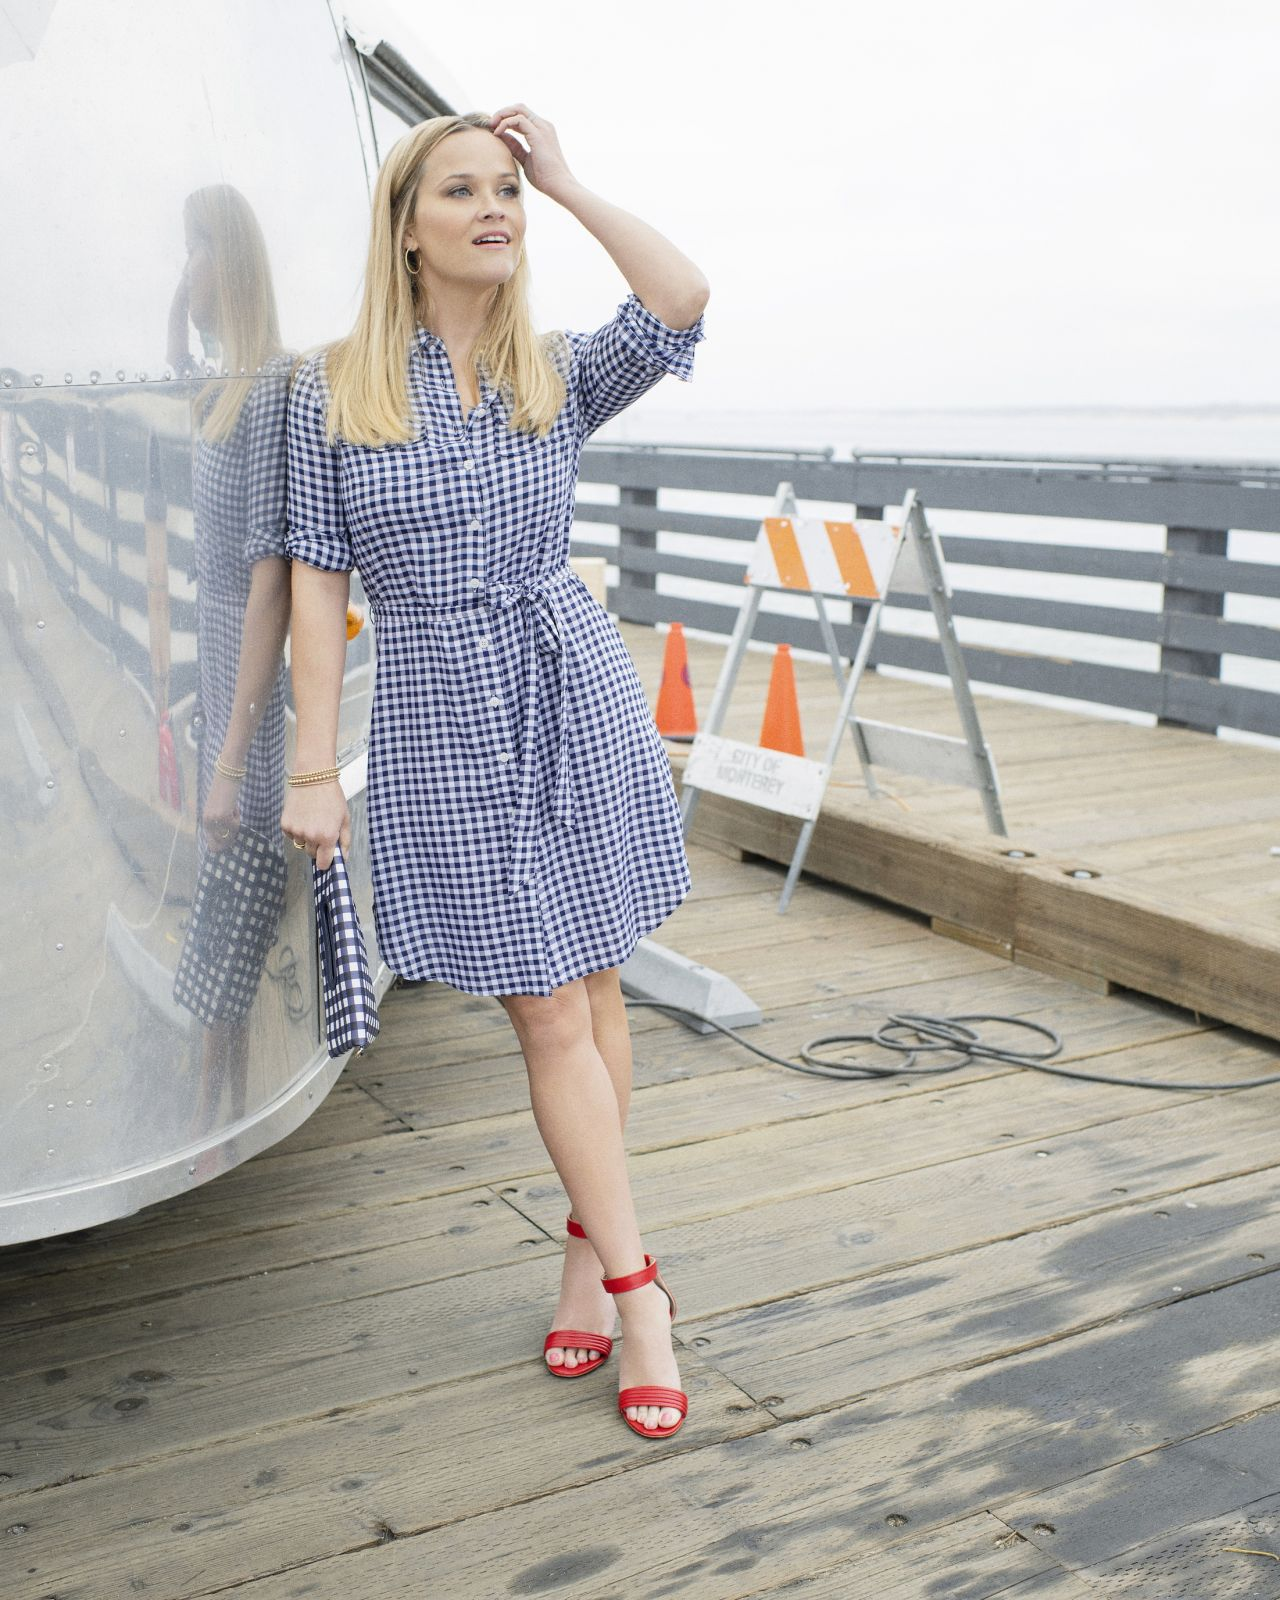 http://celebmafia.com/wp-content/uploads/2018/05/reese-witherspoon-draper-james-clothing-line-summer-campaign-2018-4.jpg